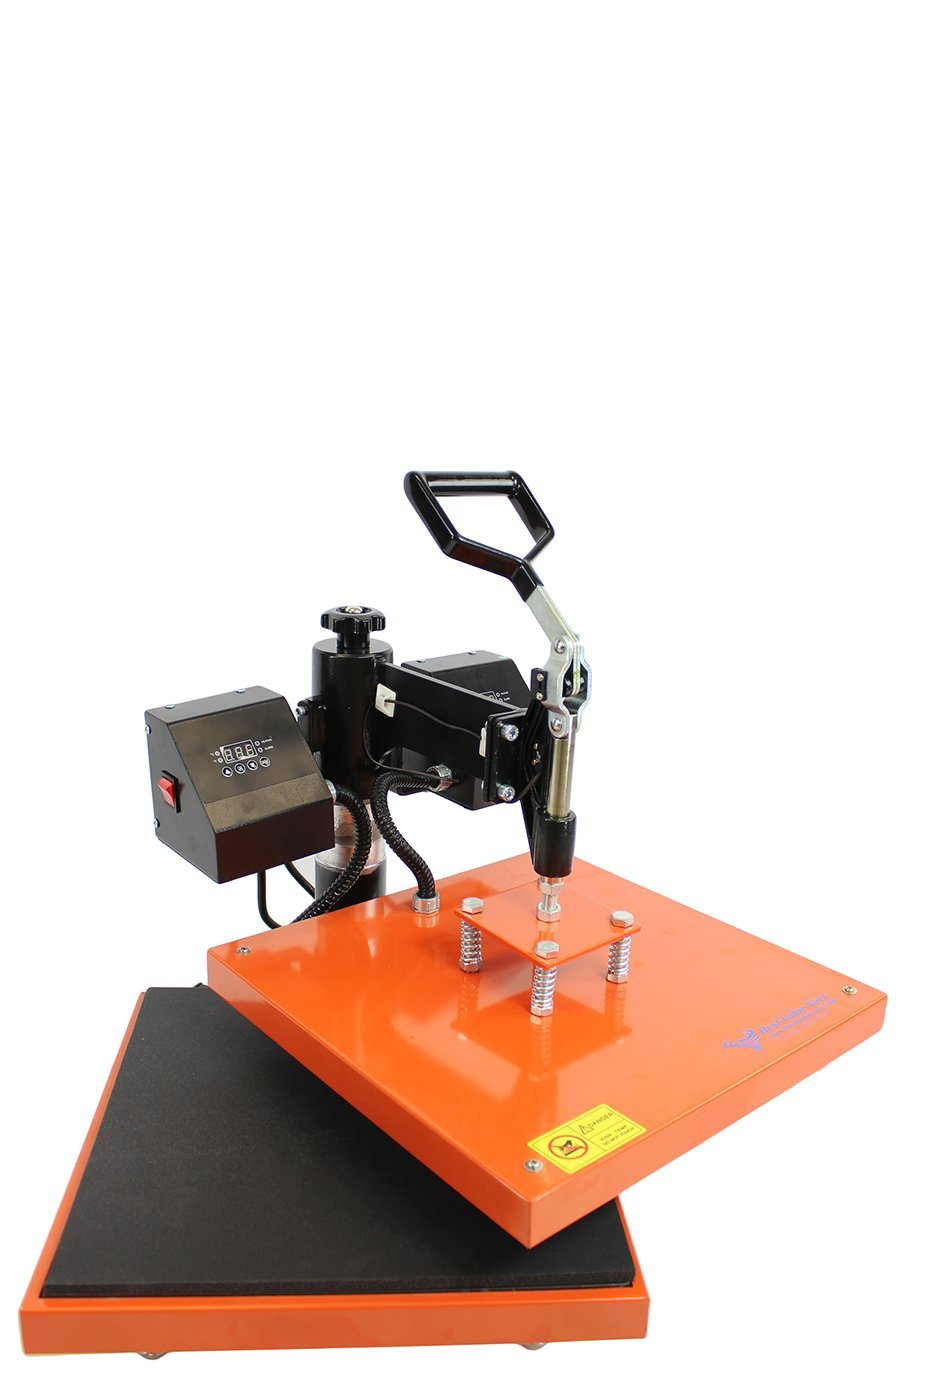 15'' x 15'' Rosin Heat Press Dual Element Heating by BestValueVacs